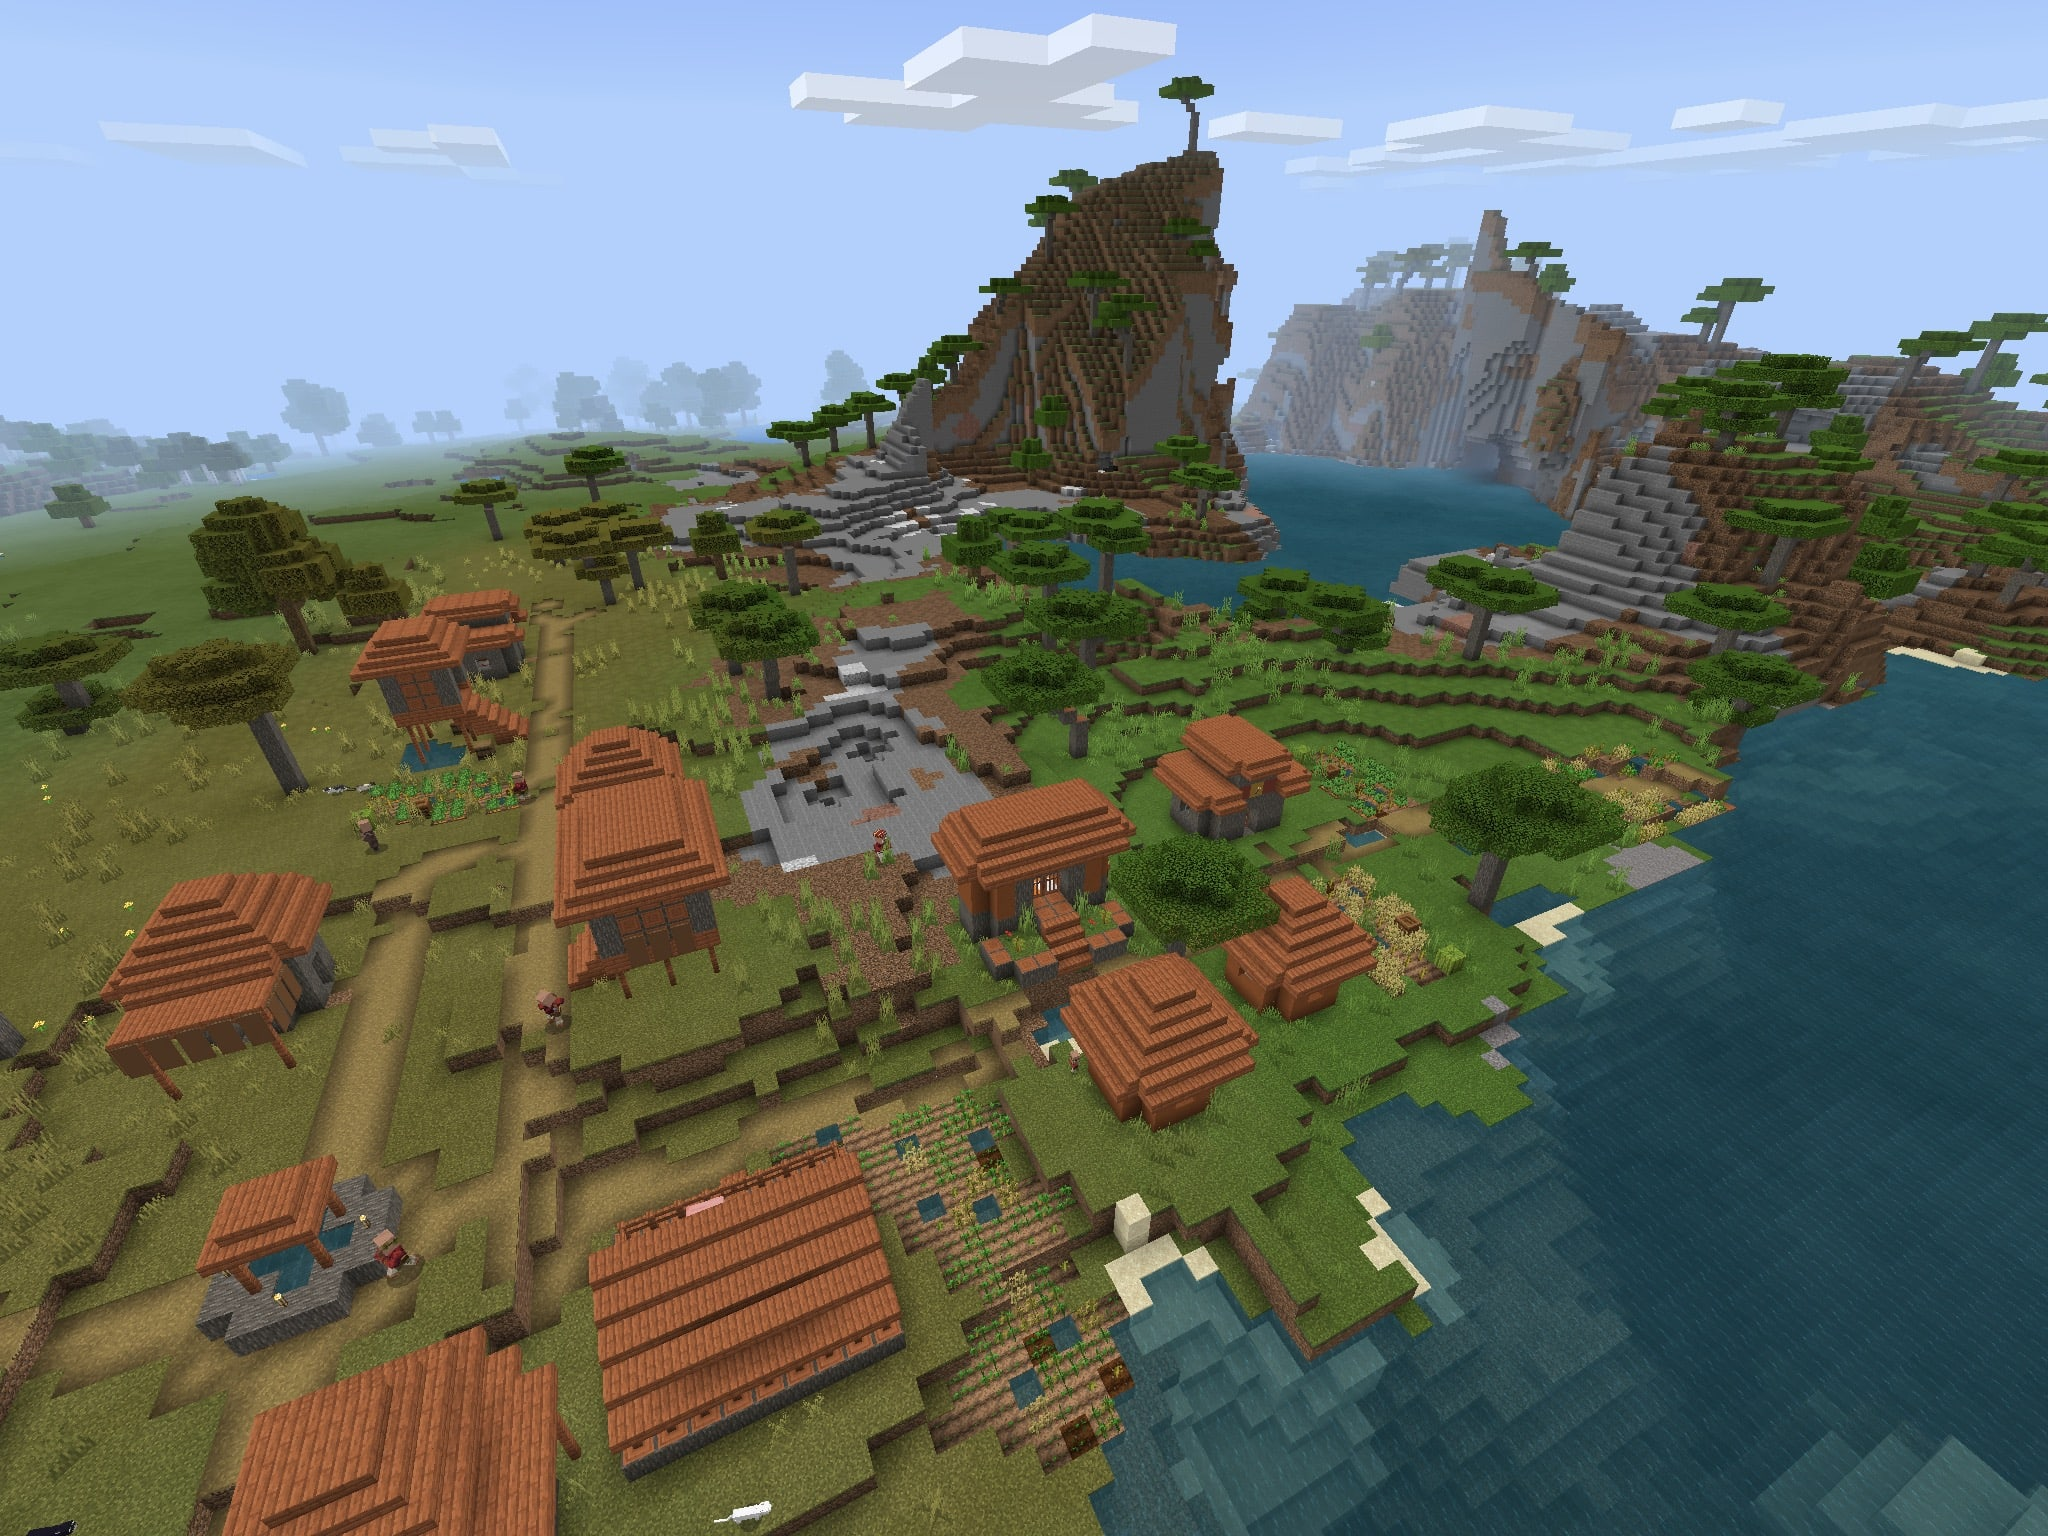 Minecraft Savanna Village Seed - PE